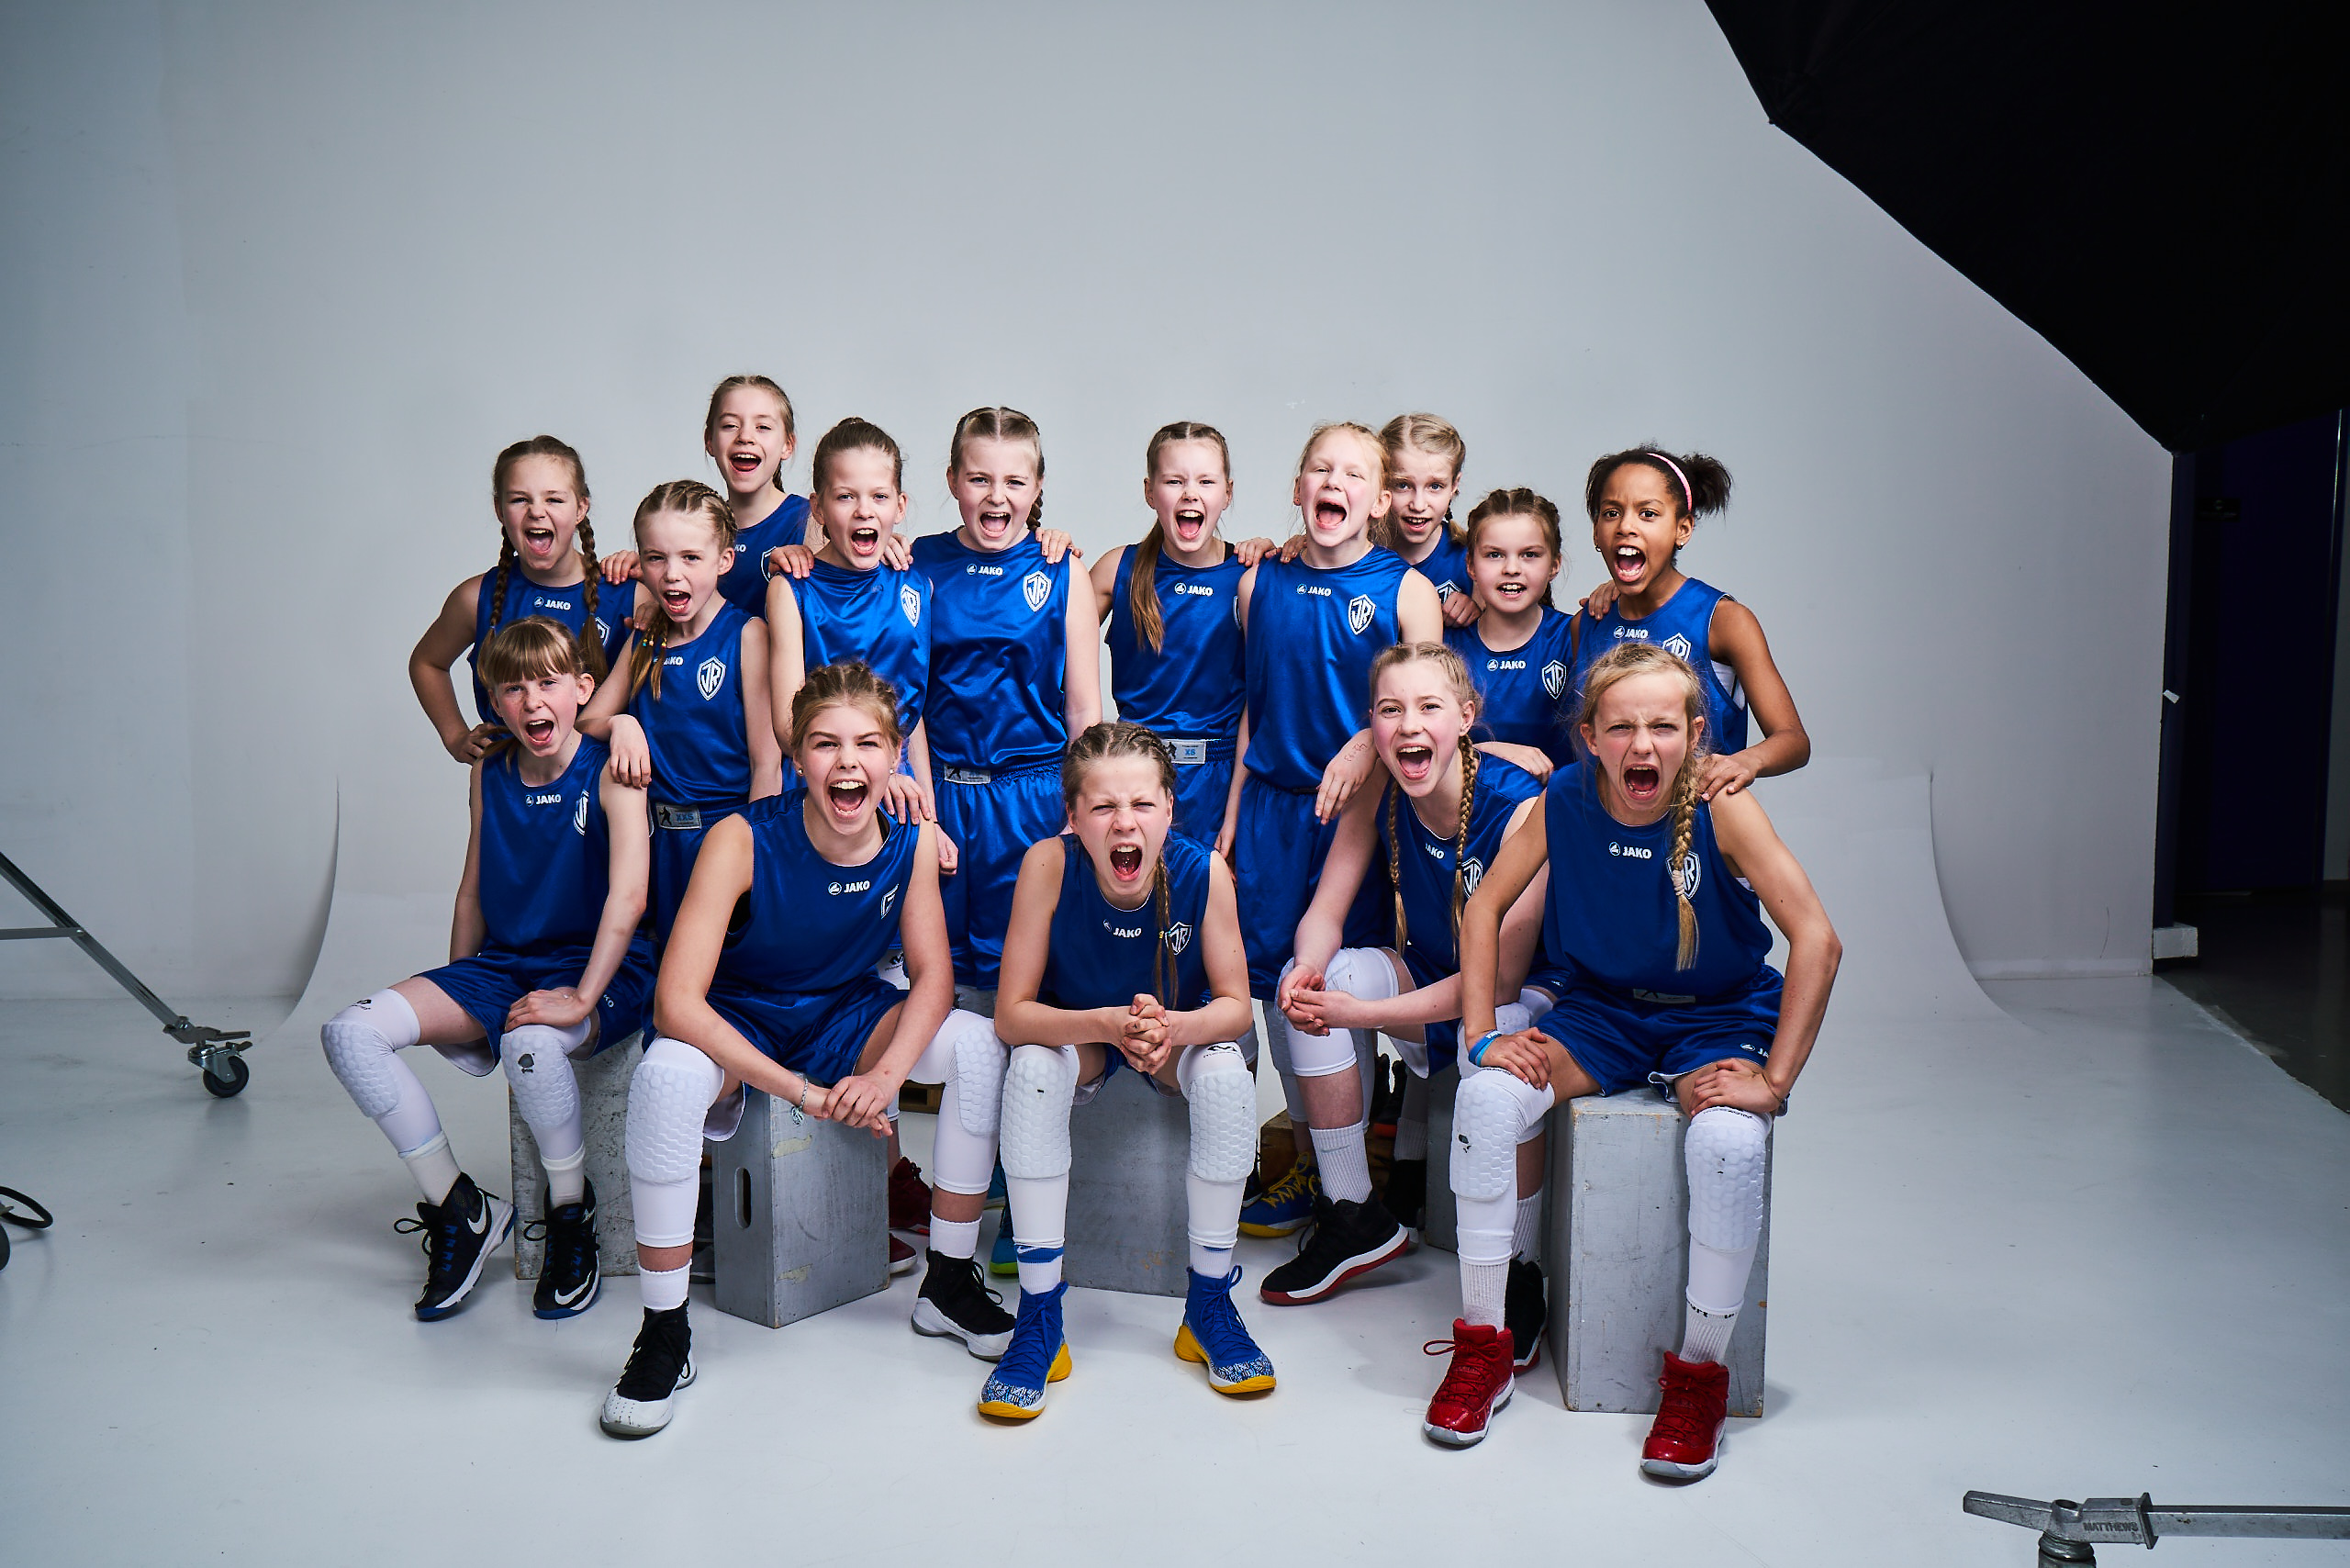 Raise the Bar which tells the inspiration story of a team of 8–13-year-old girls, who wanted to change the paradigm in women's basketball in Iceland, will be one of the films to premiere at next month's festival.